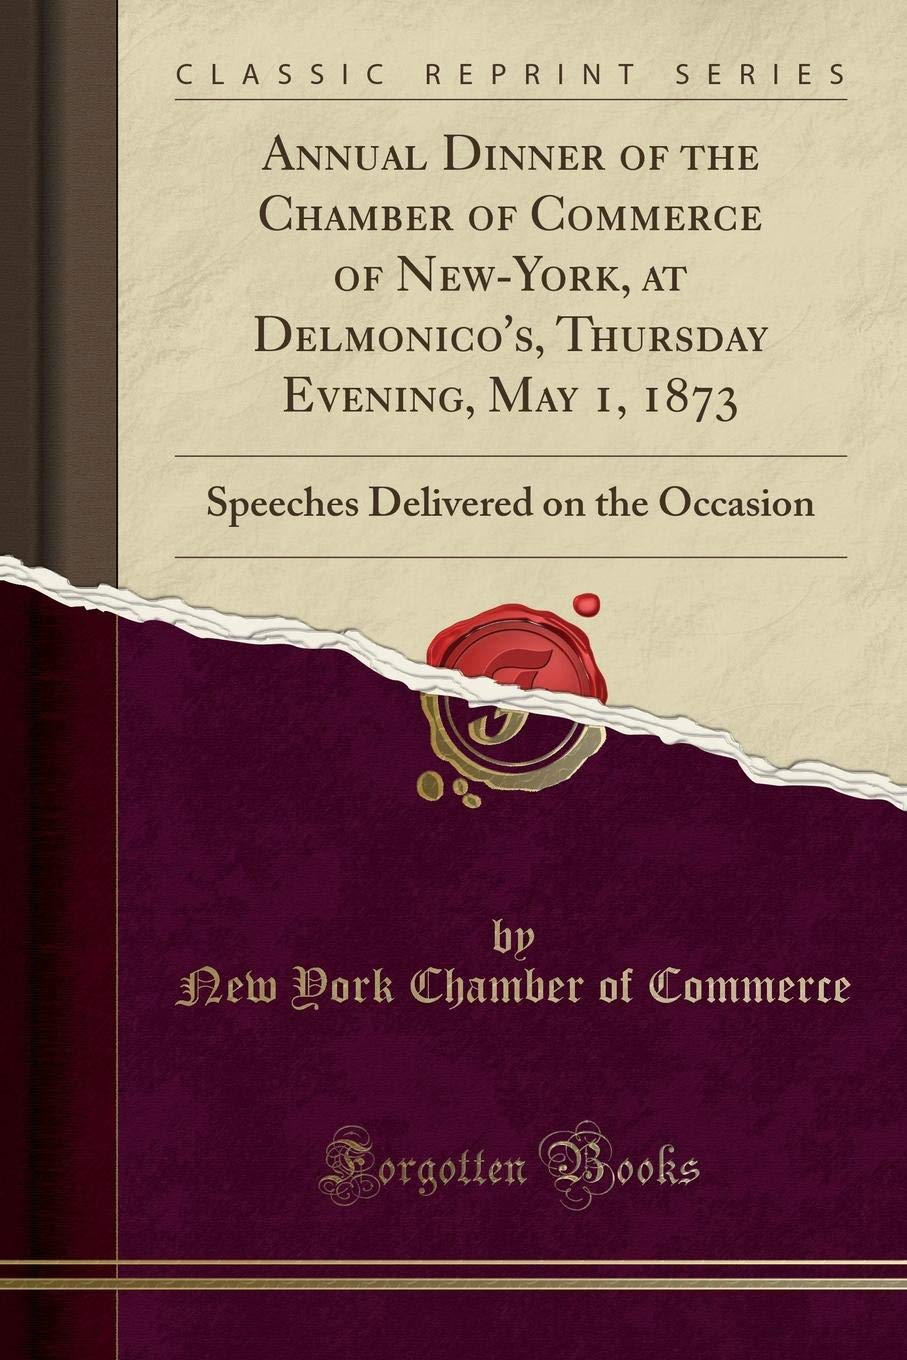 Download Annual Dinner of the Chamber of Commerce of New-York, at Delmonico's, Thursday Evening, May 1, 1873: Speeches Delivered on the Occasion (Classic Reprint) ebook